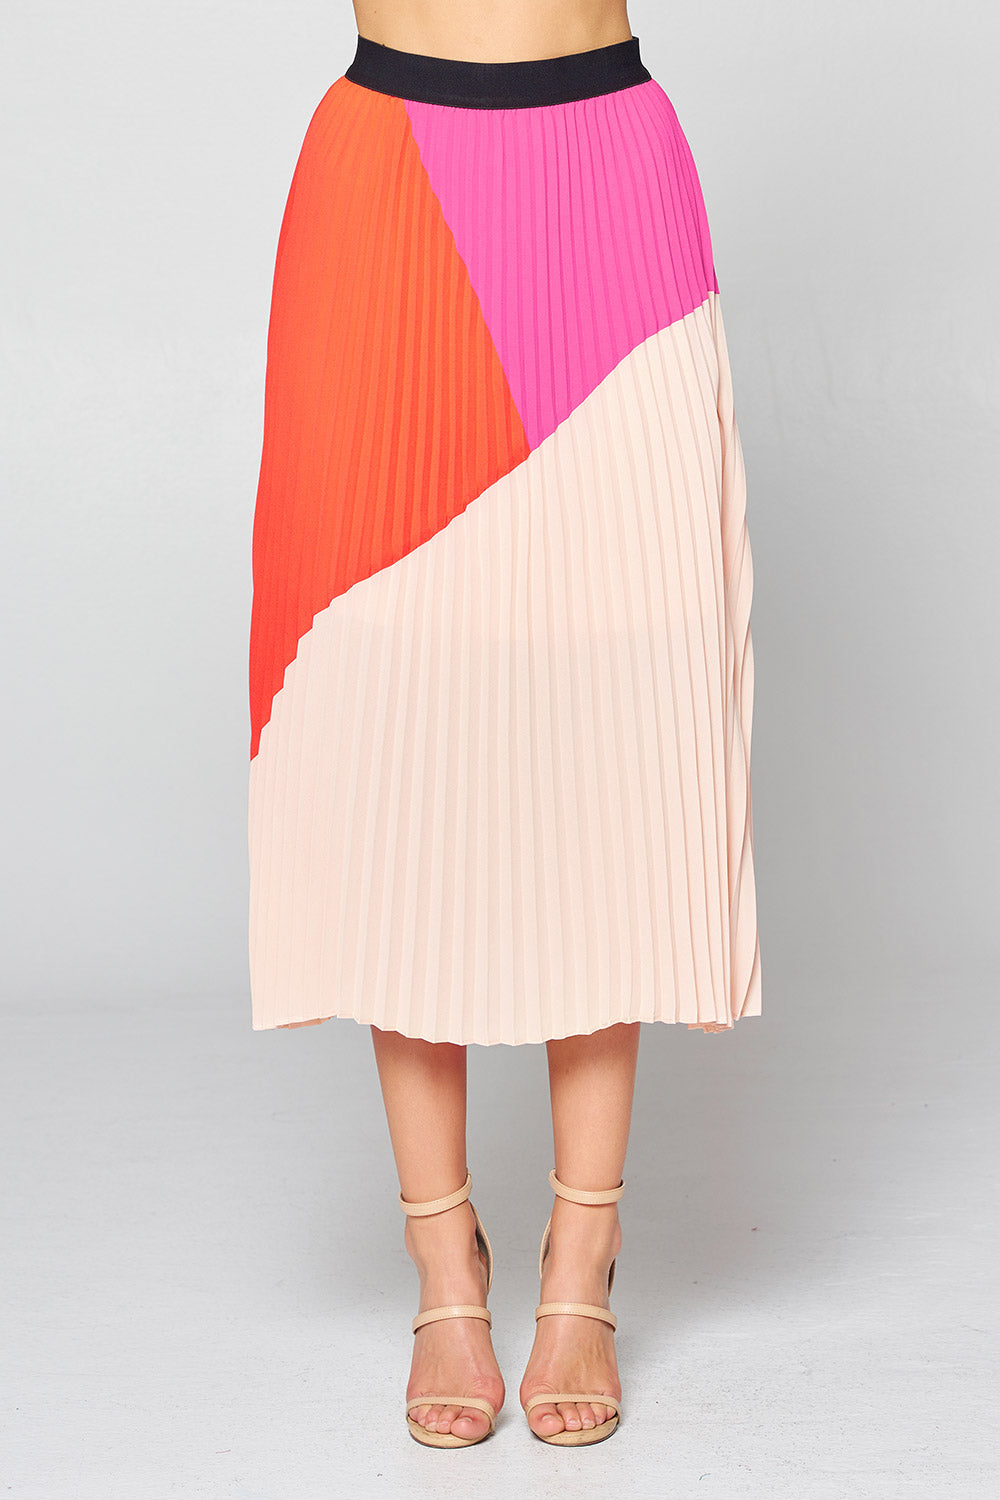 Touch of Pink Neon Skirt